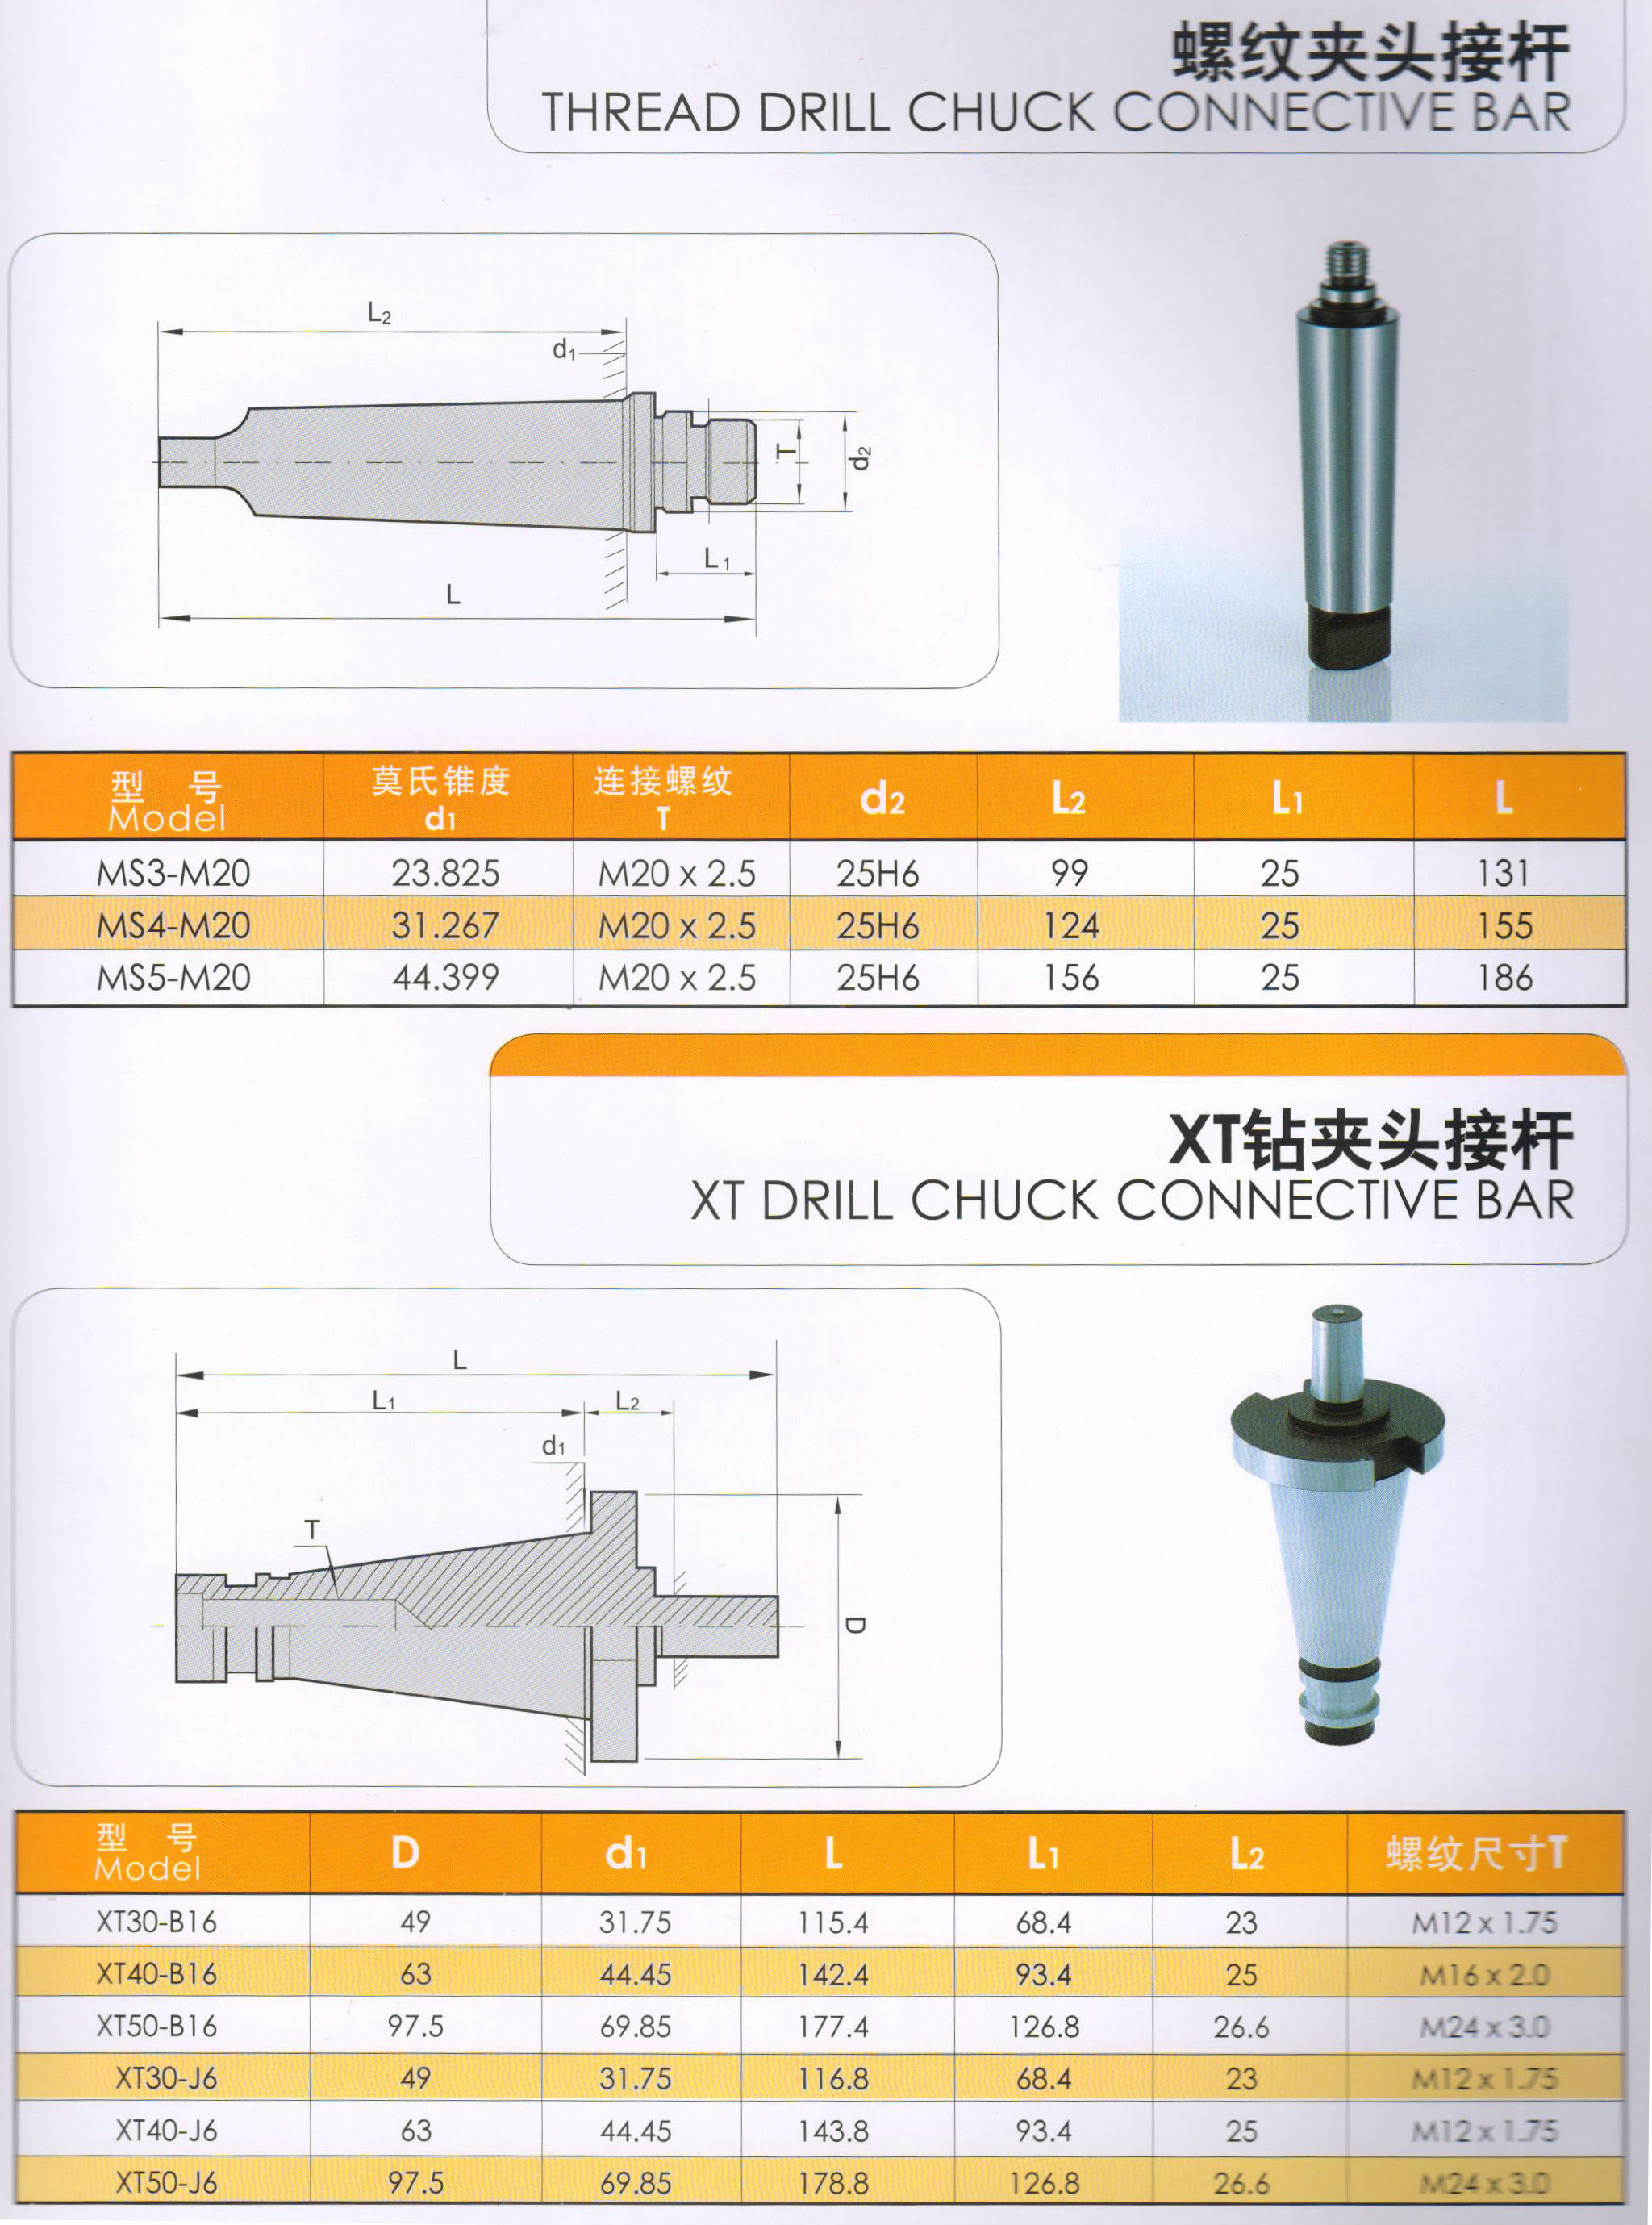 THREAD DRILL CHUCK CONNECTIVE BAR